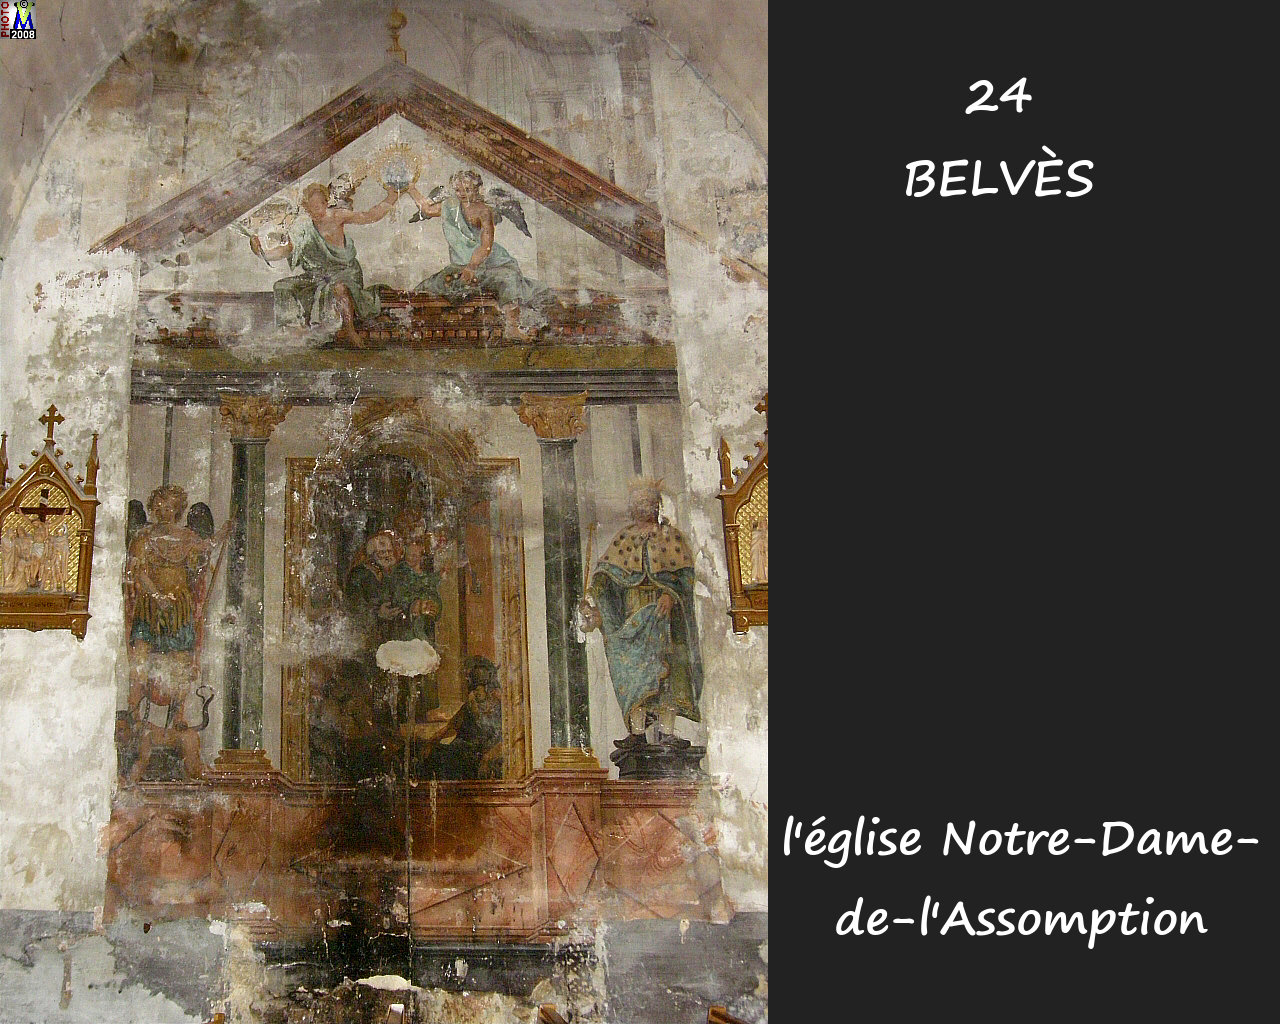 24BELVES_eglise_216.jpg